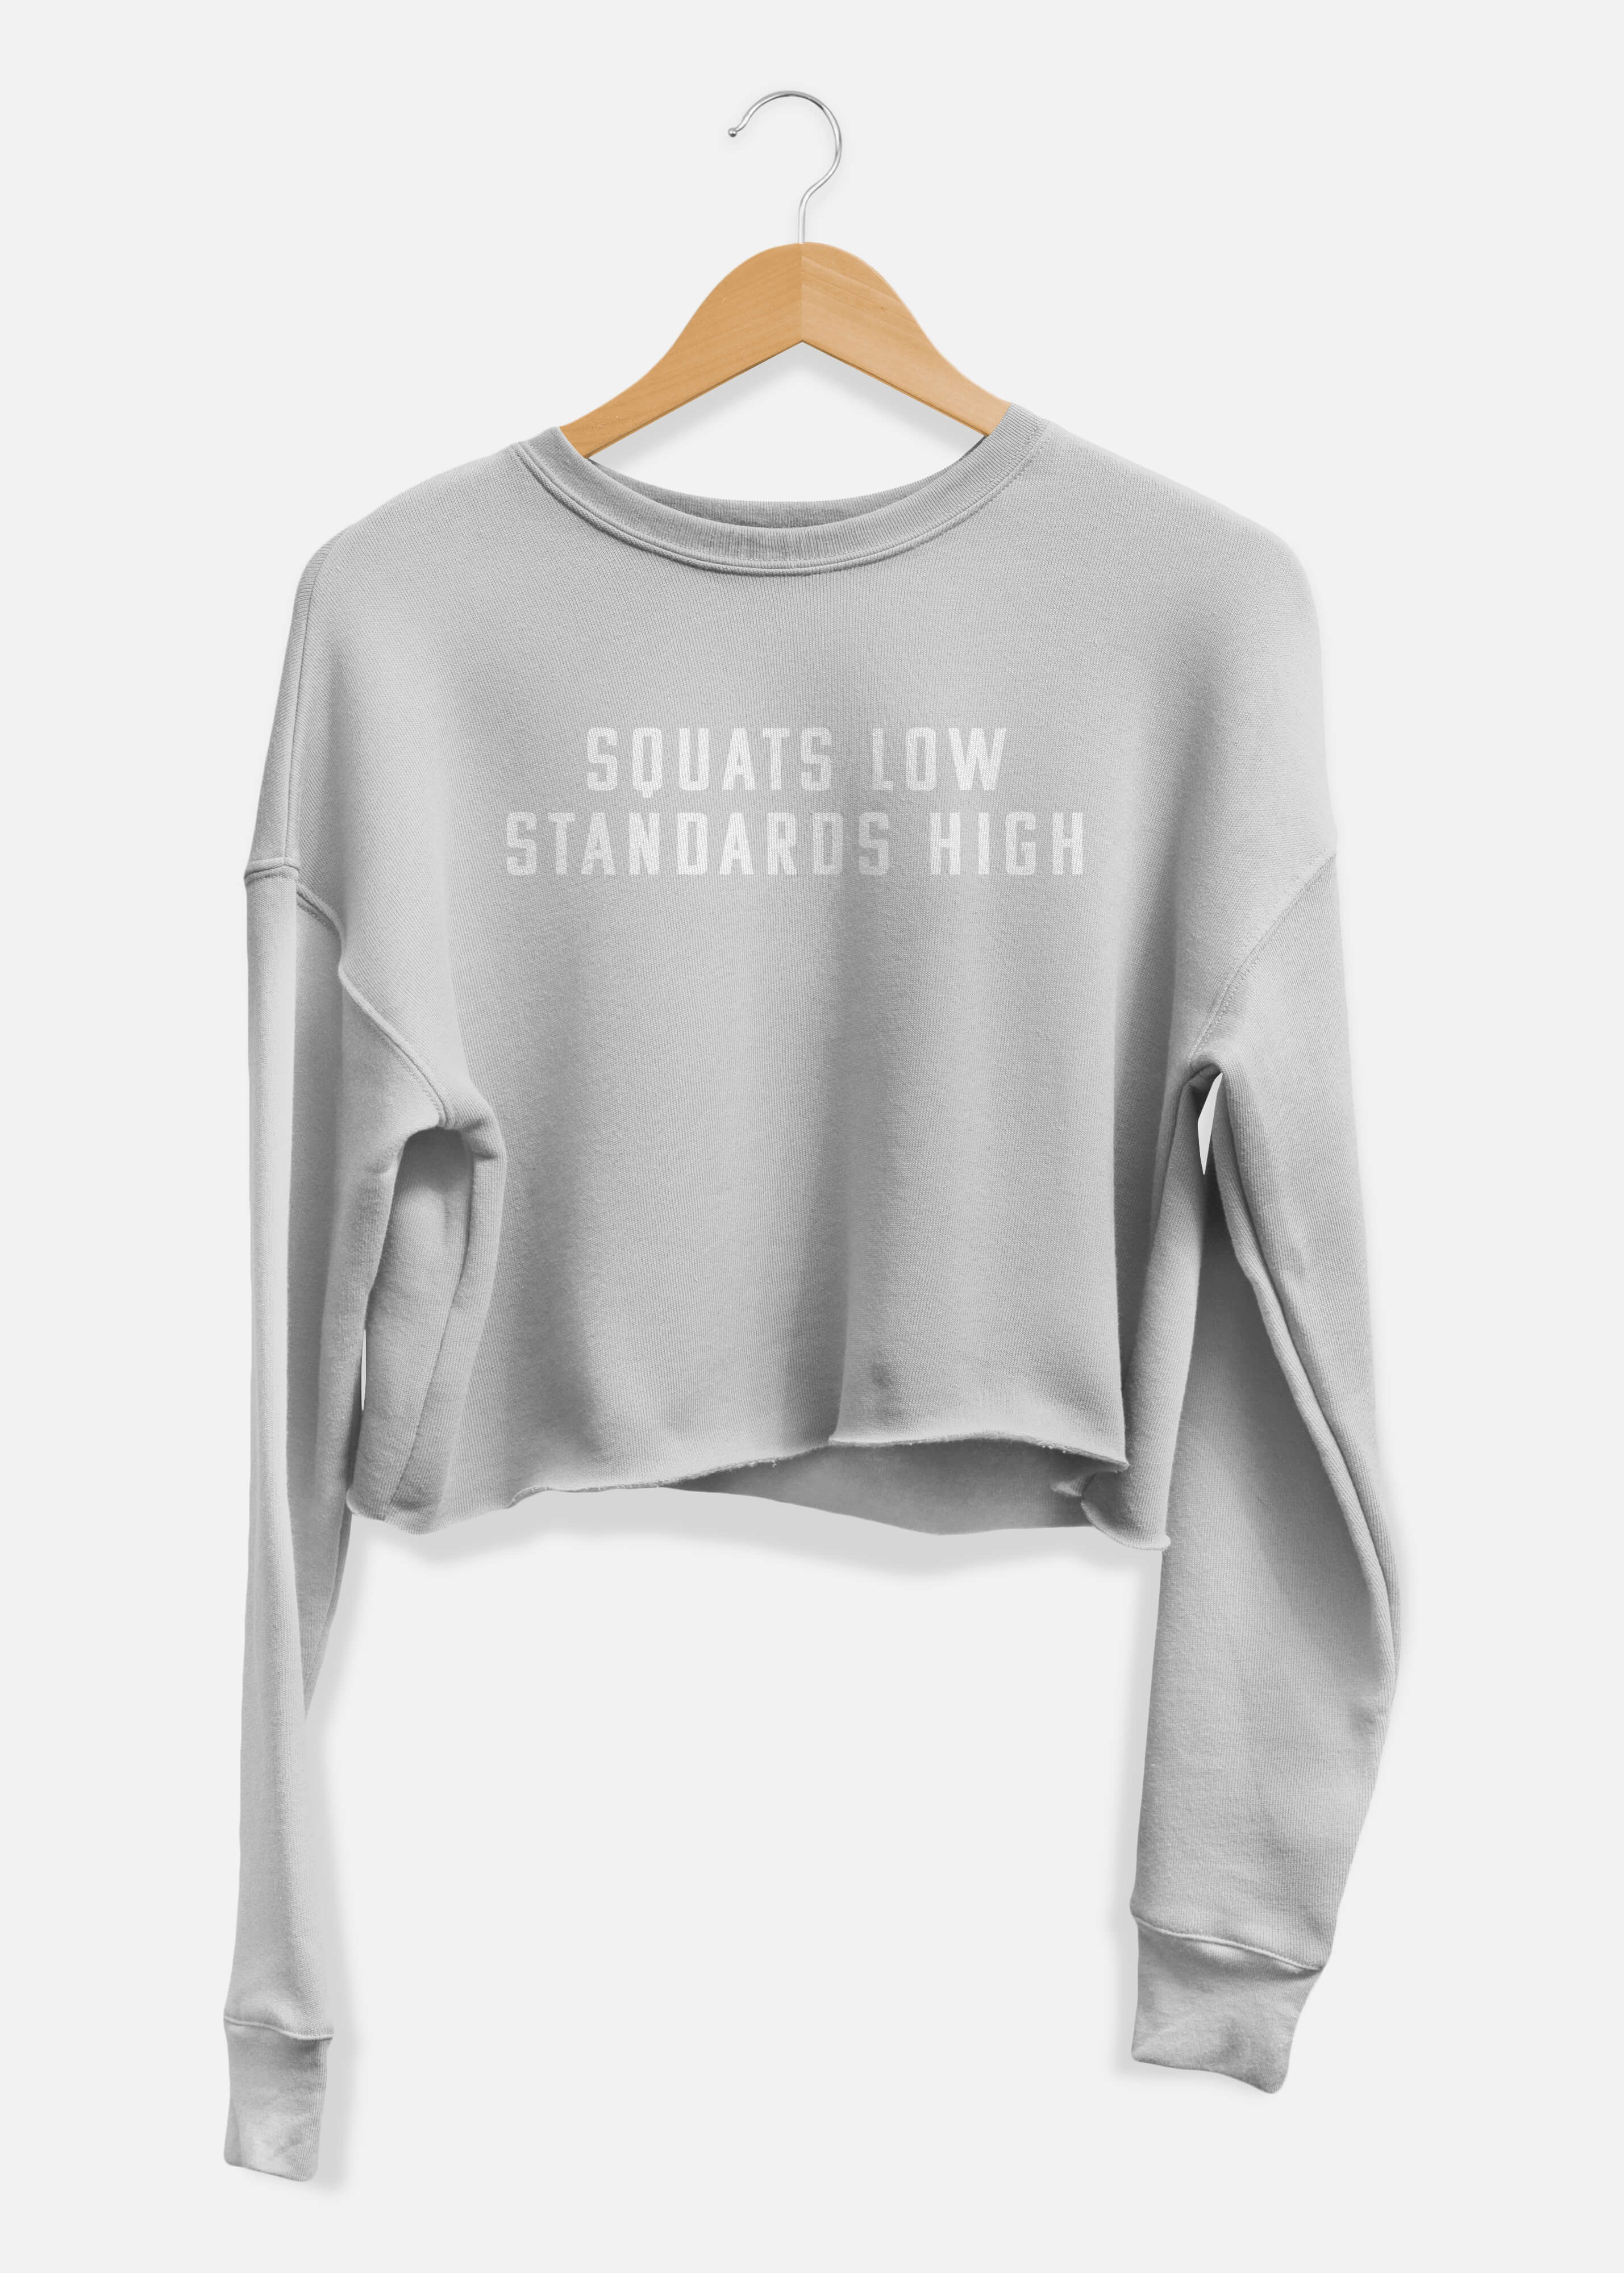 Squats Low Standards High Cropped Sweater